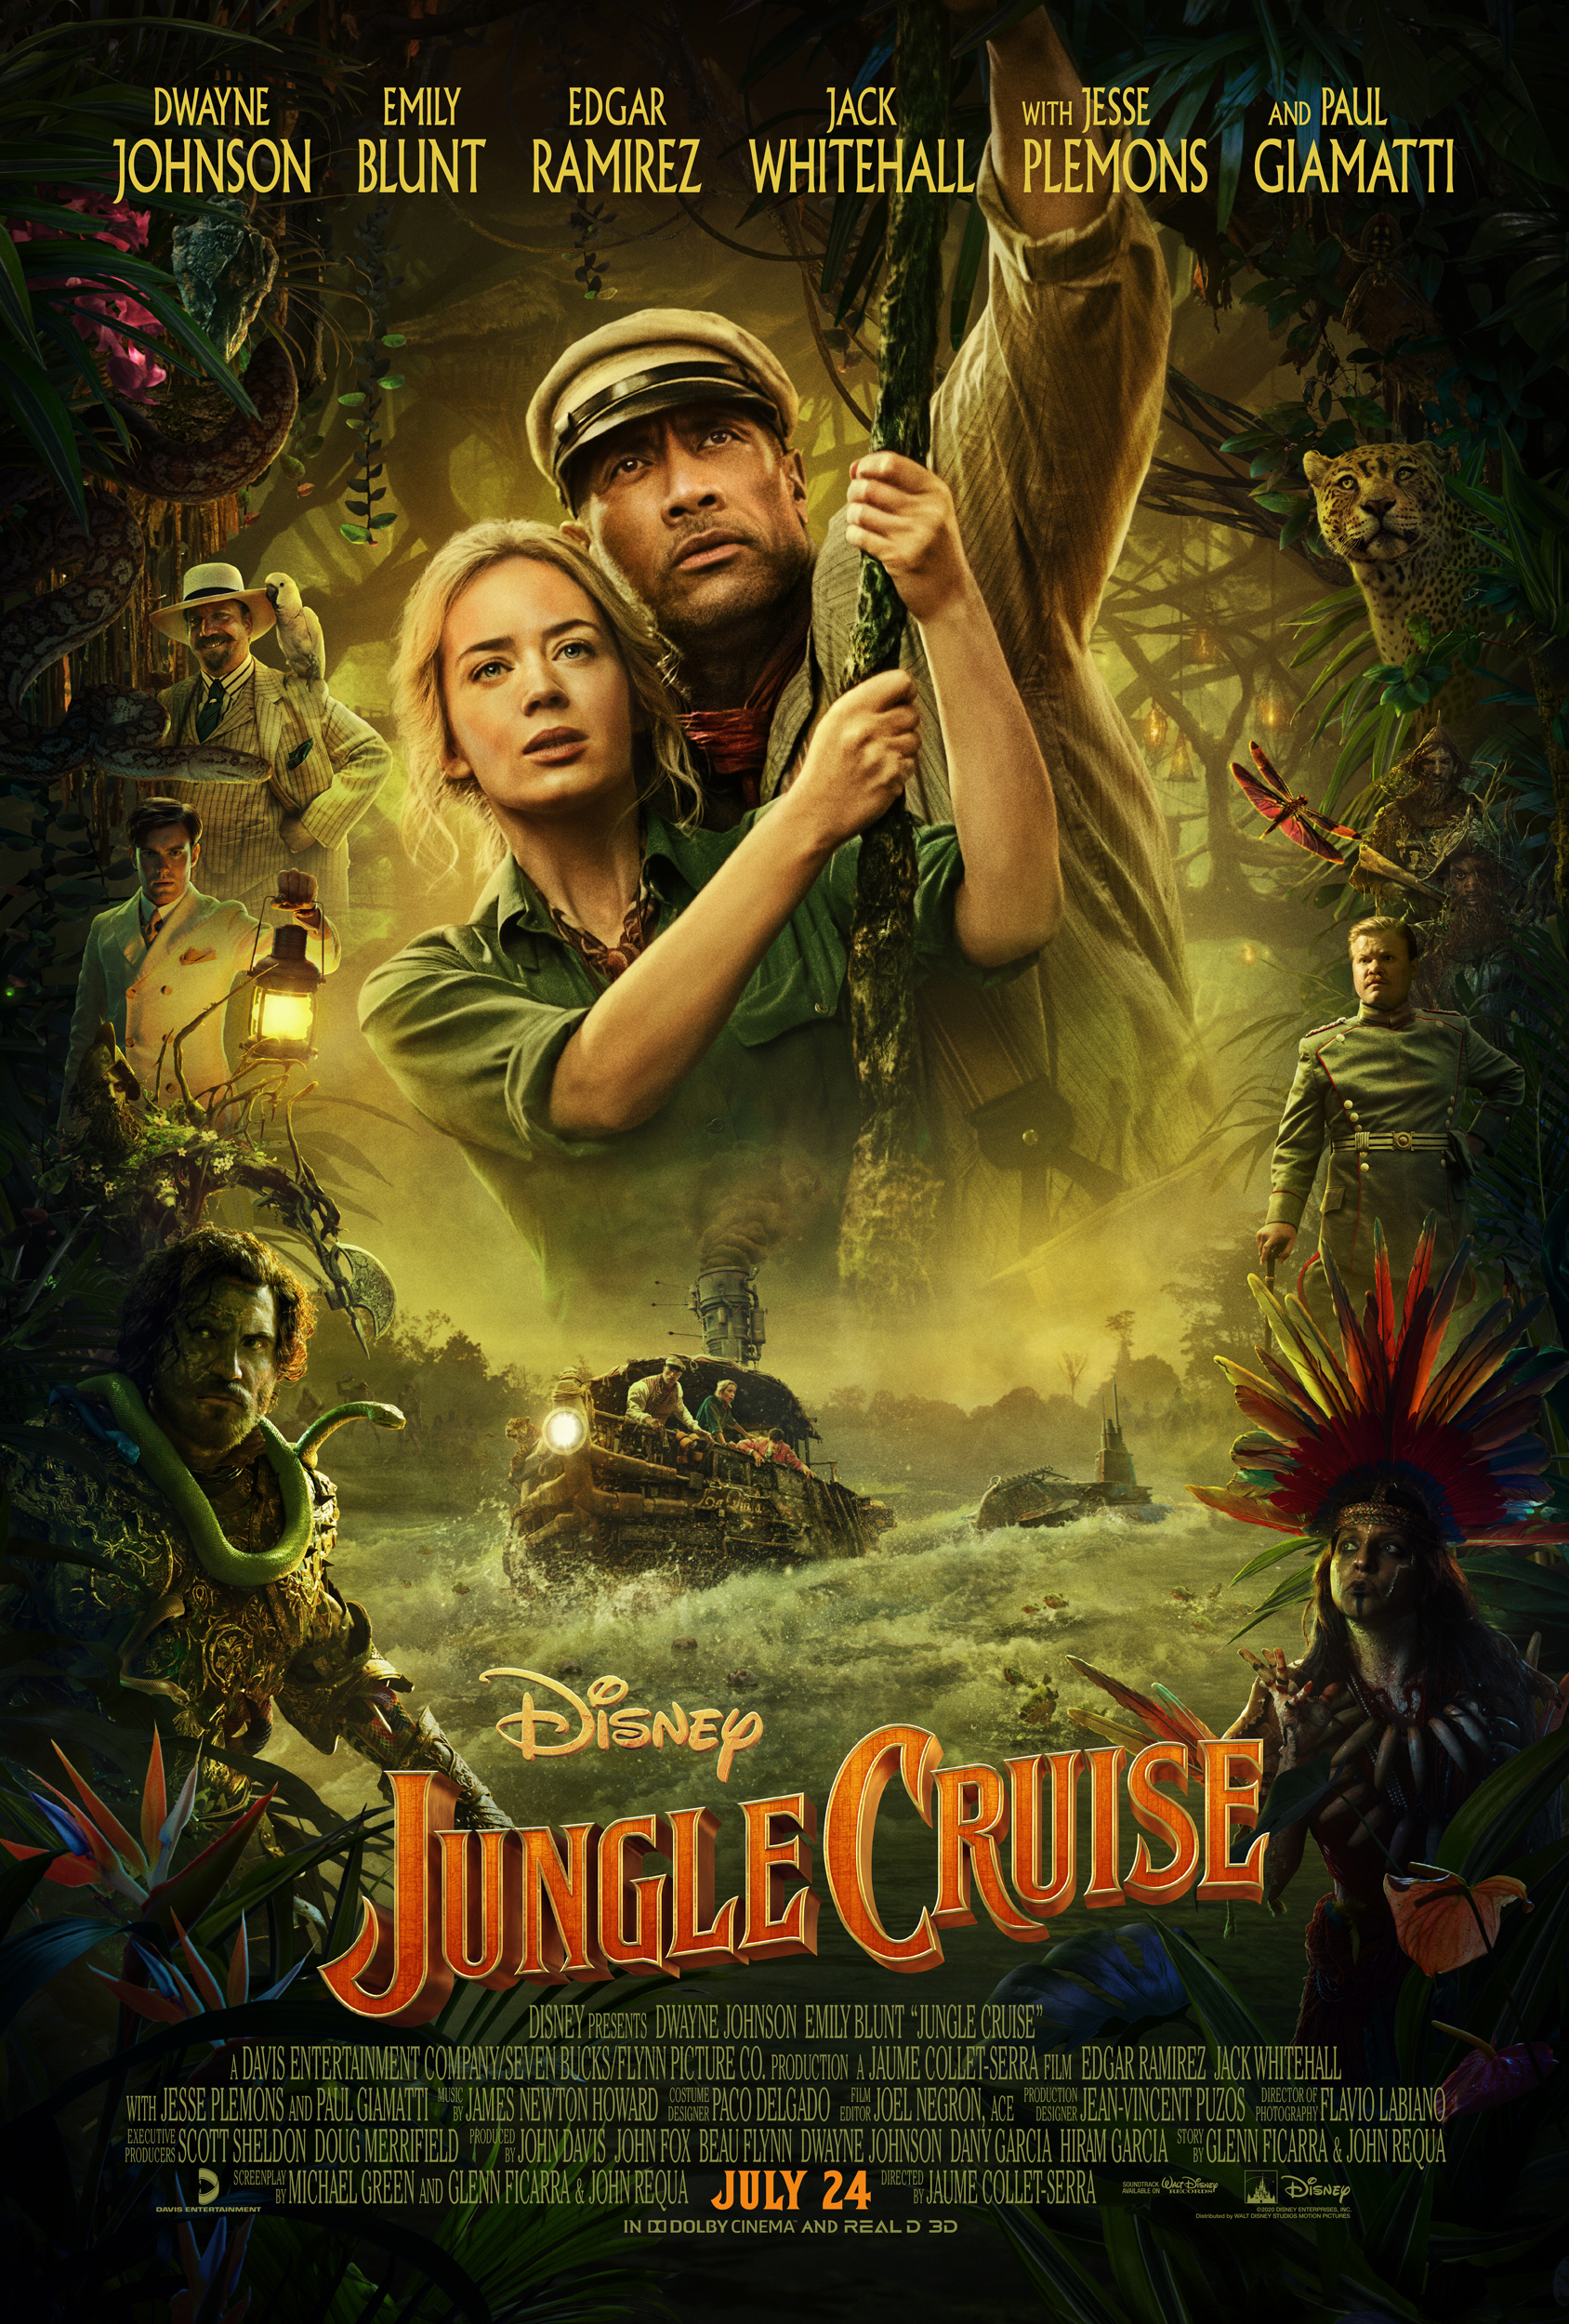 Jungle Cruise movie poster from IMDb